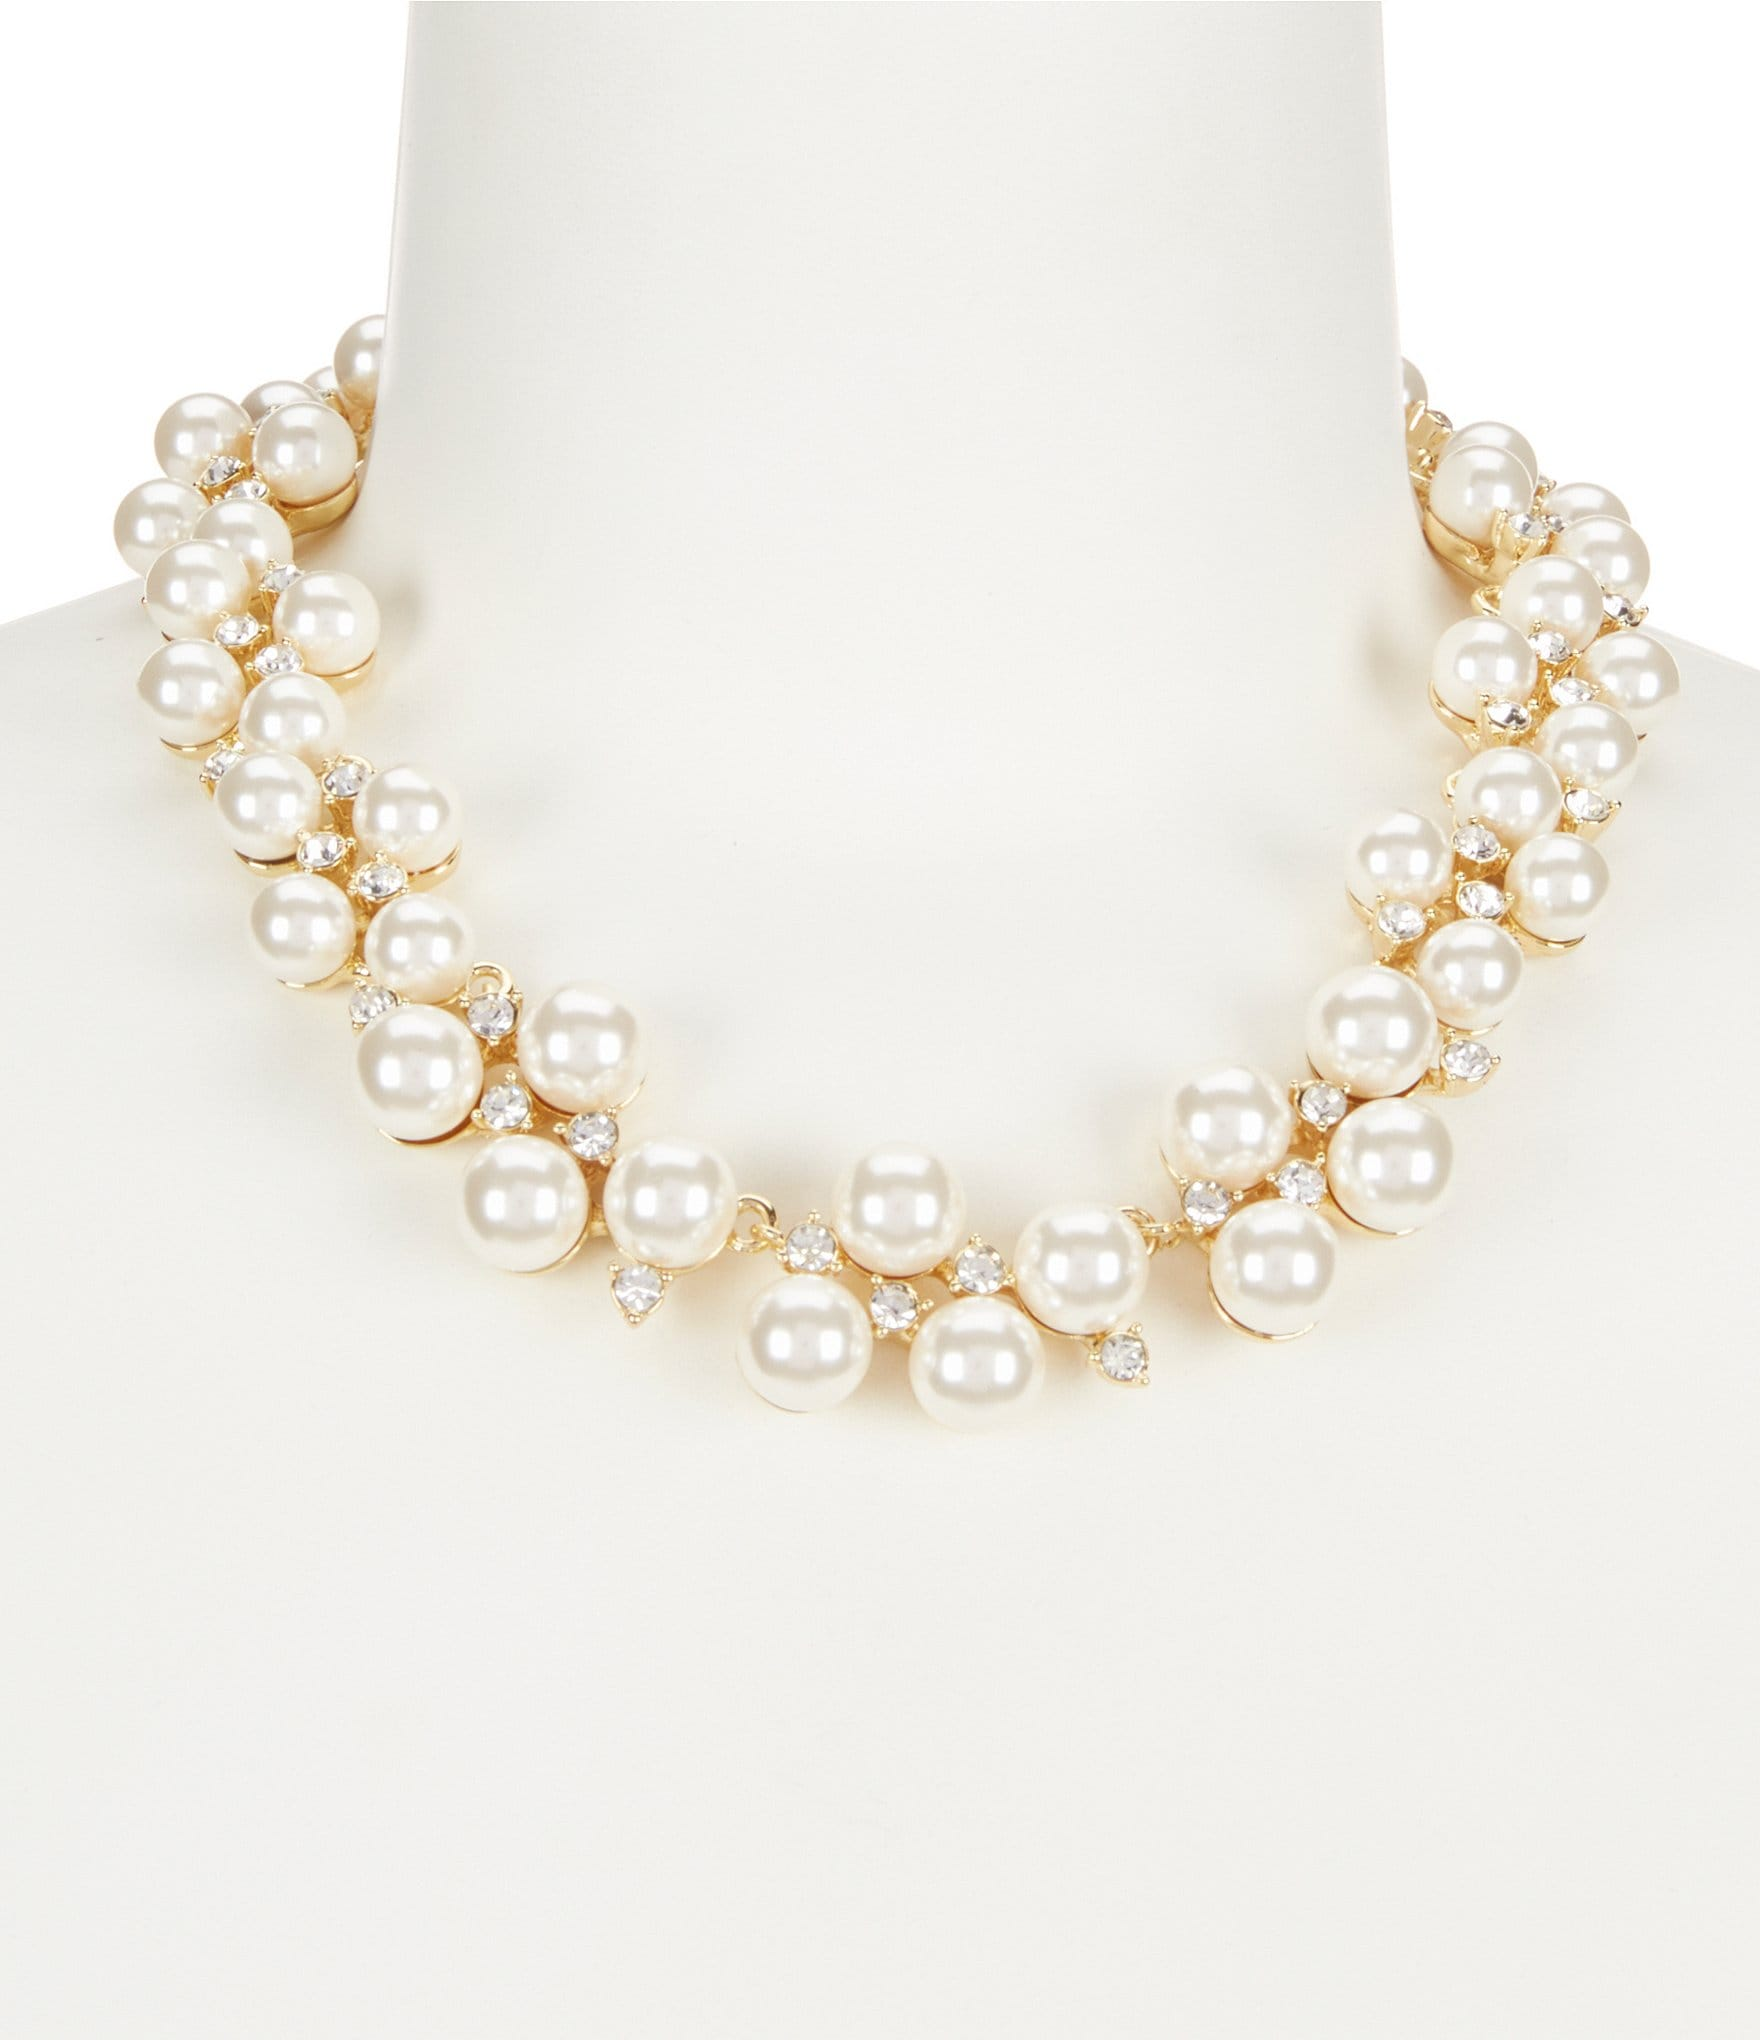 Womens Statement Necklaces Dillards